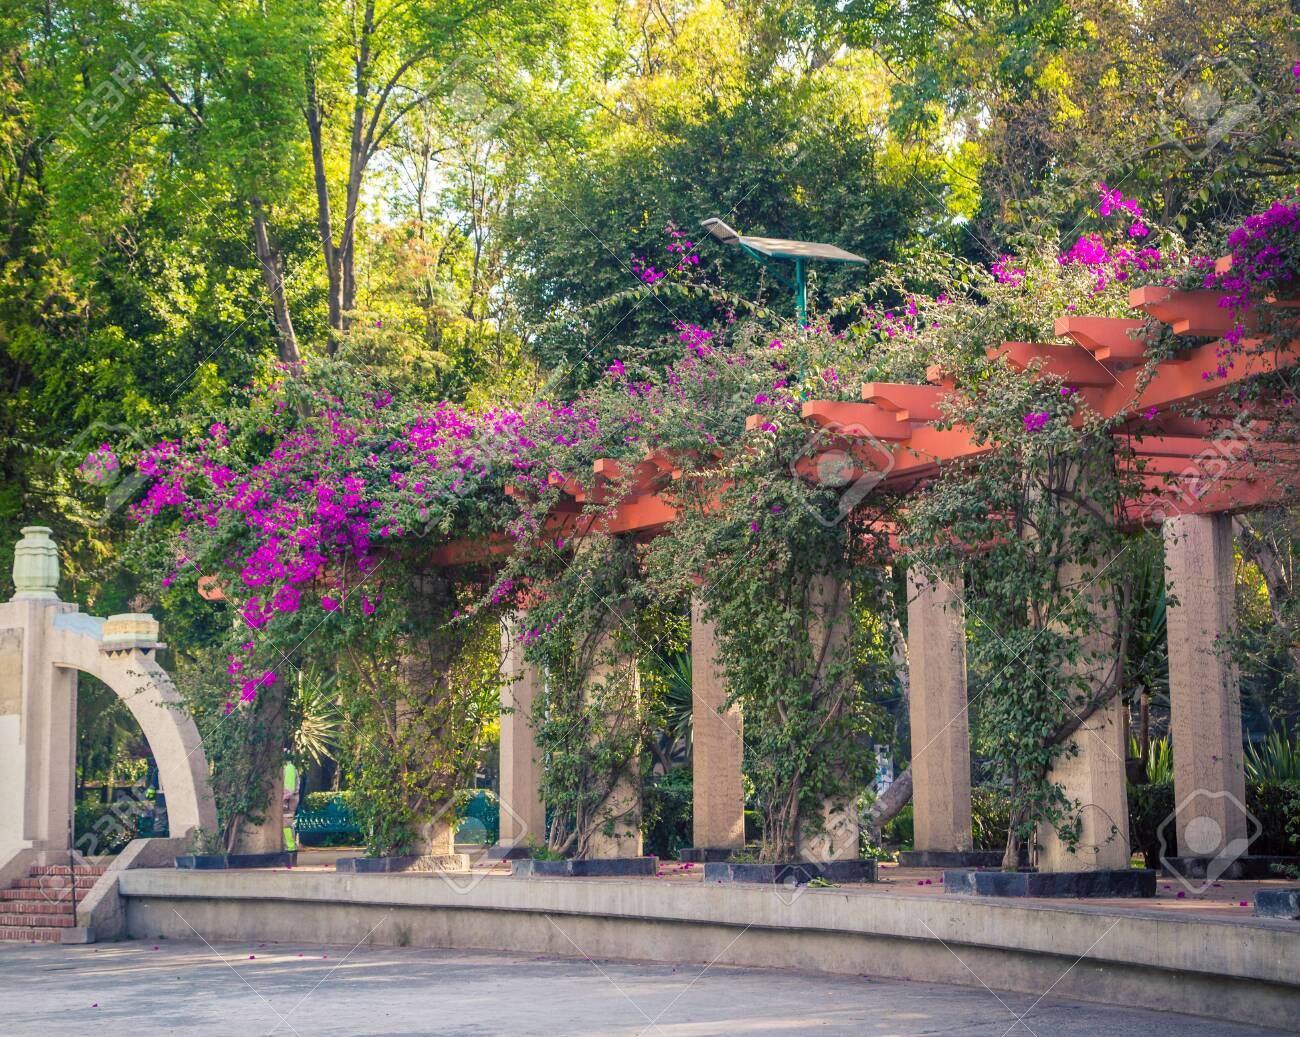 Garden Trellis In A Park Stock Photo Picture And Royalty Free